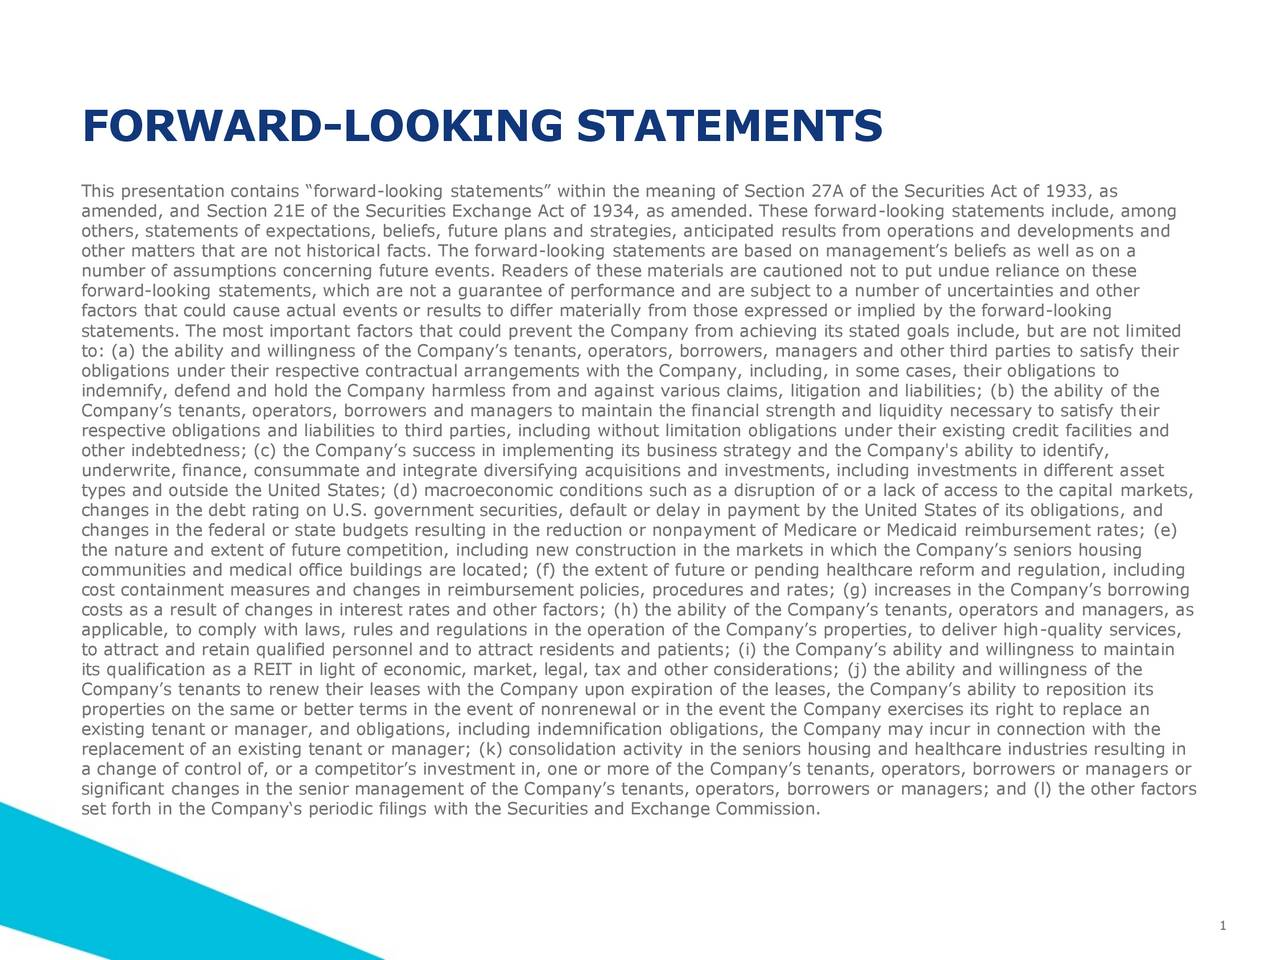 This presentation contains forward-looking statements within the meaning of Section 27A of the Securities Act of 1933, as amended, and Section 21E of the Securities Exchange Act of 1934, as amended. These forward-looking statements include, among others, statements of expectations, beliefs, future plans and strategies, anticipated results from operations and developments and other matters that are not historical facts. The forward-looking statements are based on managements beliefs as well as on a number of assumptions concerning future events. Readers of these materials are cautioned not to put undue reliance on these forward-looking statements, which are not a guarantee of performance and are subject to a number of uncertainties and other factors that could cause actual events or results to differ materially from those expressed or implied by the forward-looking statements. The most important factors that could prevent the Company from achieving its stated goals include, but are not limited to: (a) the ability and willingness of the Companys tenants, operators, borrowers, managers and other third parties to satisfy their obligations under their respective contractual arrangements with the Company, including, in some cases, their obligations to indemnify, defend and hold the Company harmless from and against various claims, litigation and liabilities; (b) the ability of the Companys tenants, operators, borrowers and managers to maintain the financial strength and liquidity necessary to satisfy their respective obligations and liabilities to third parties, including without limitation obligations under their existing credit facilities and other indebtedness; (c) the Companys success in implementing its business strategy and the Company's ability to identify, underwrite, finance, consummate and integrate diversifying acquisitions and investments, including investments in different asset types and outside the United States; (d) macroeconomic conditions such as a disru